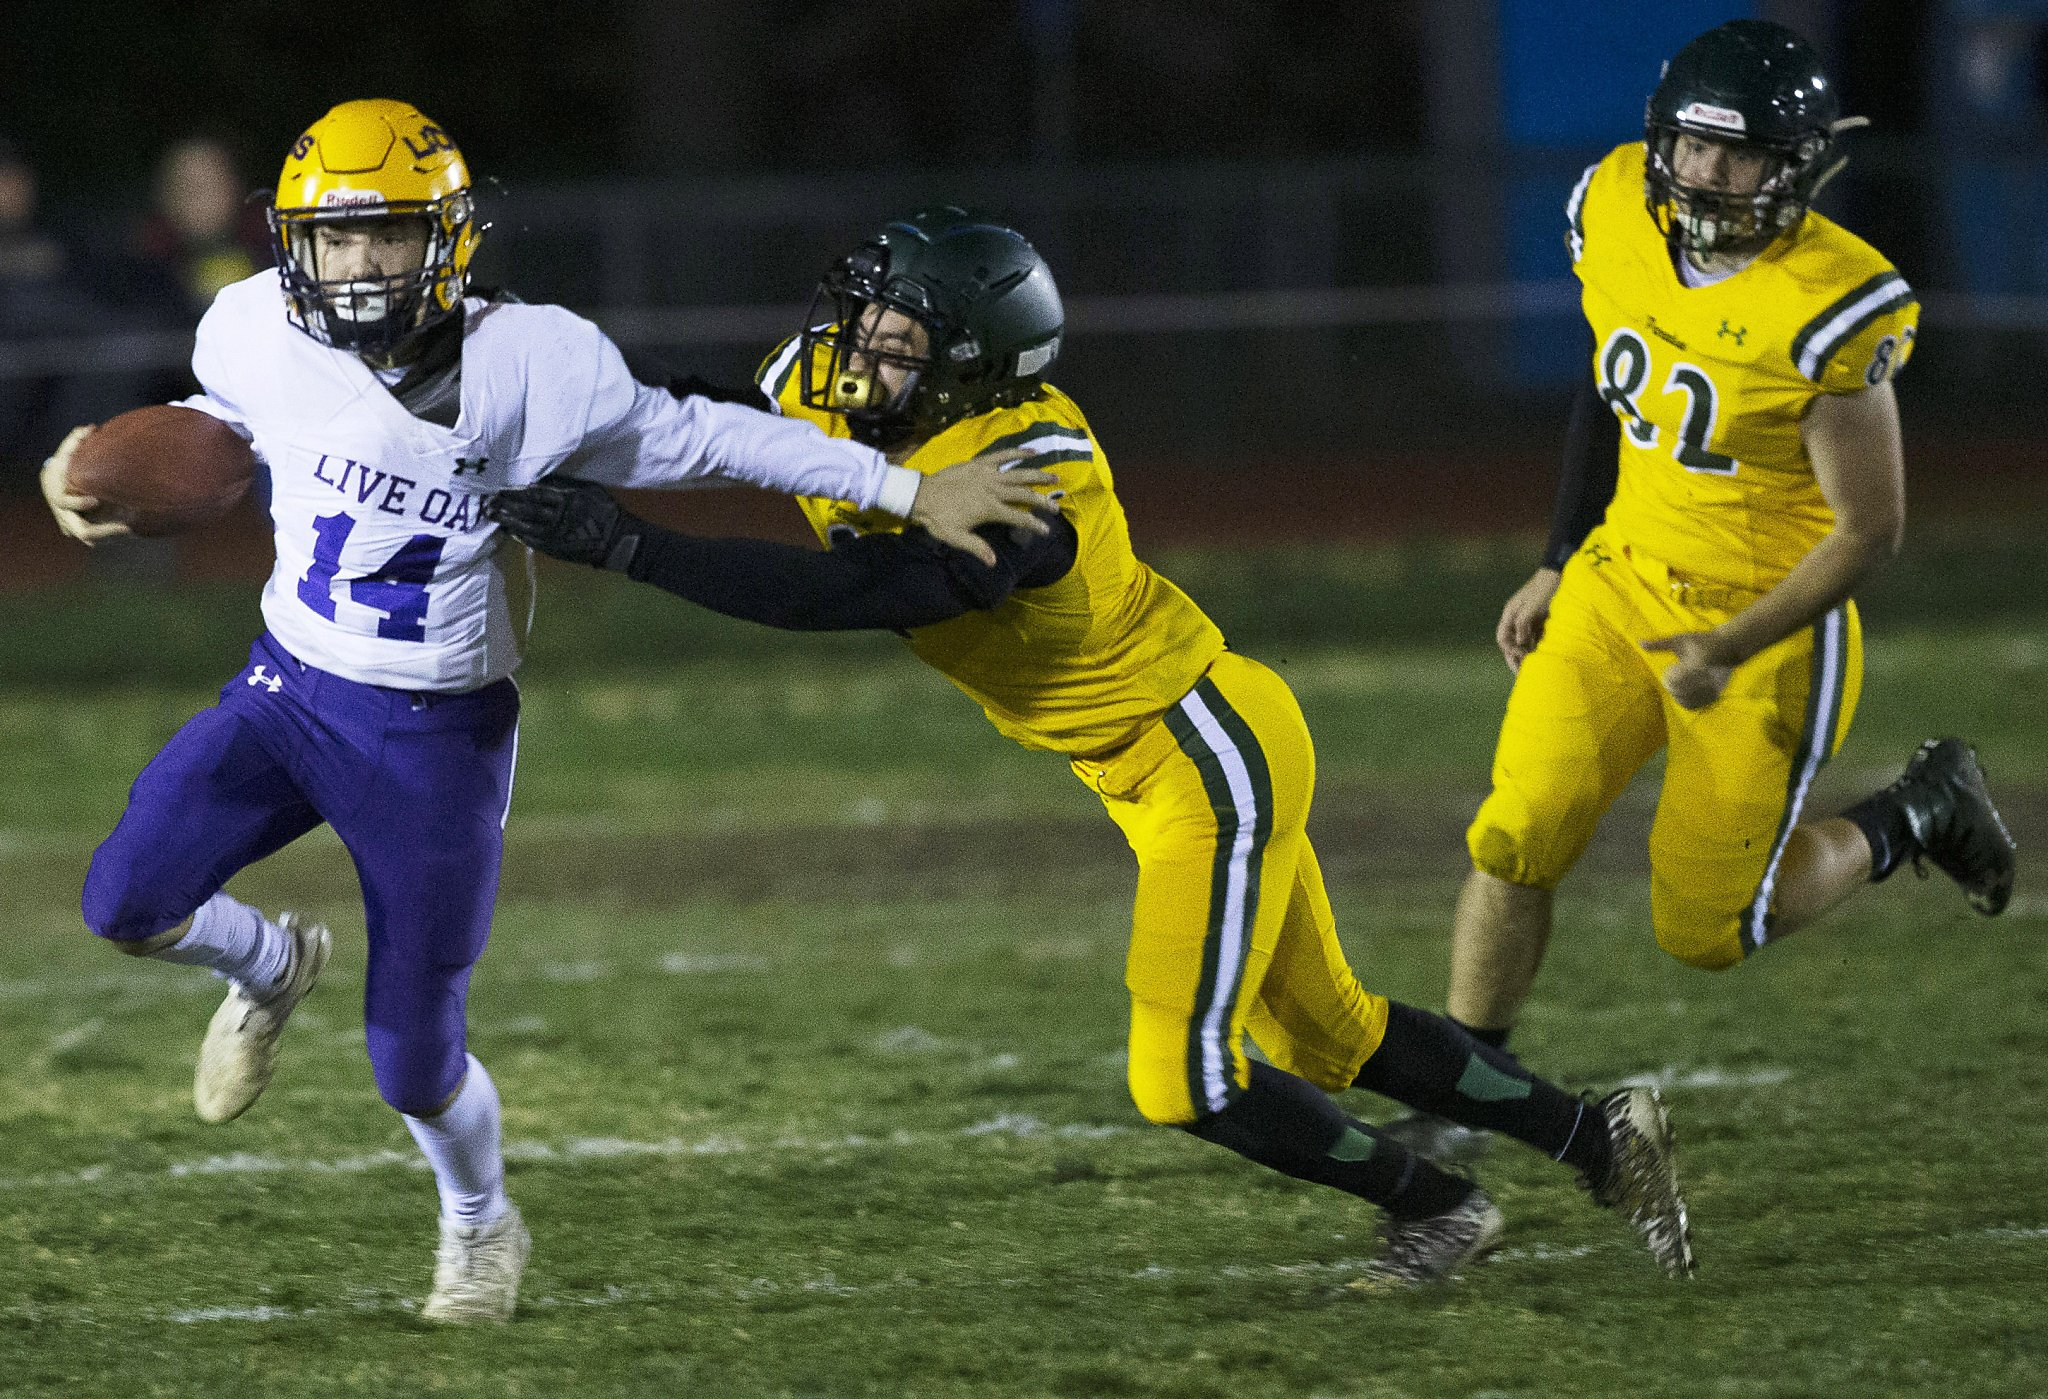 Paradise football's recovery season rolls on with rout in playoffs - San Francisco Chronicle